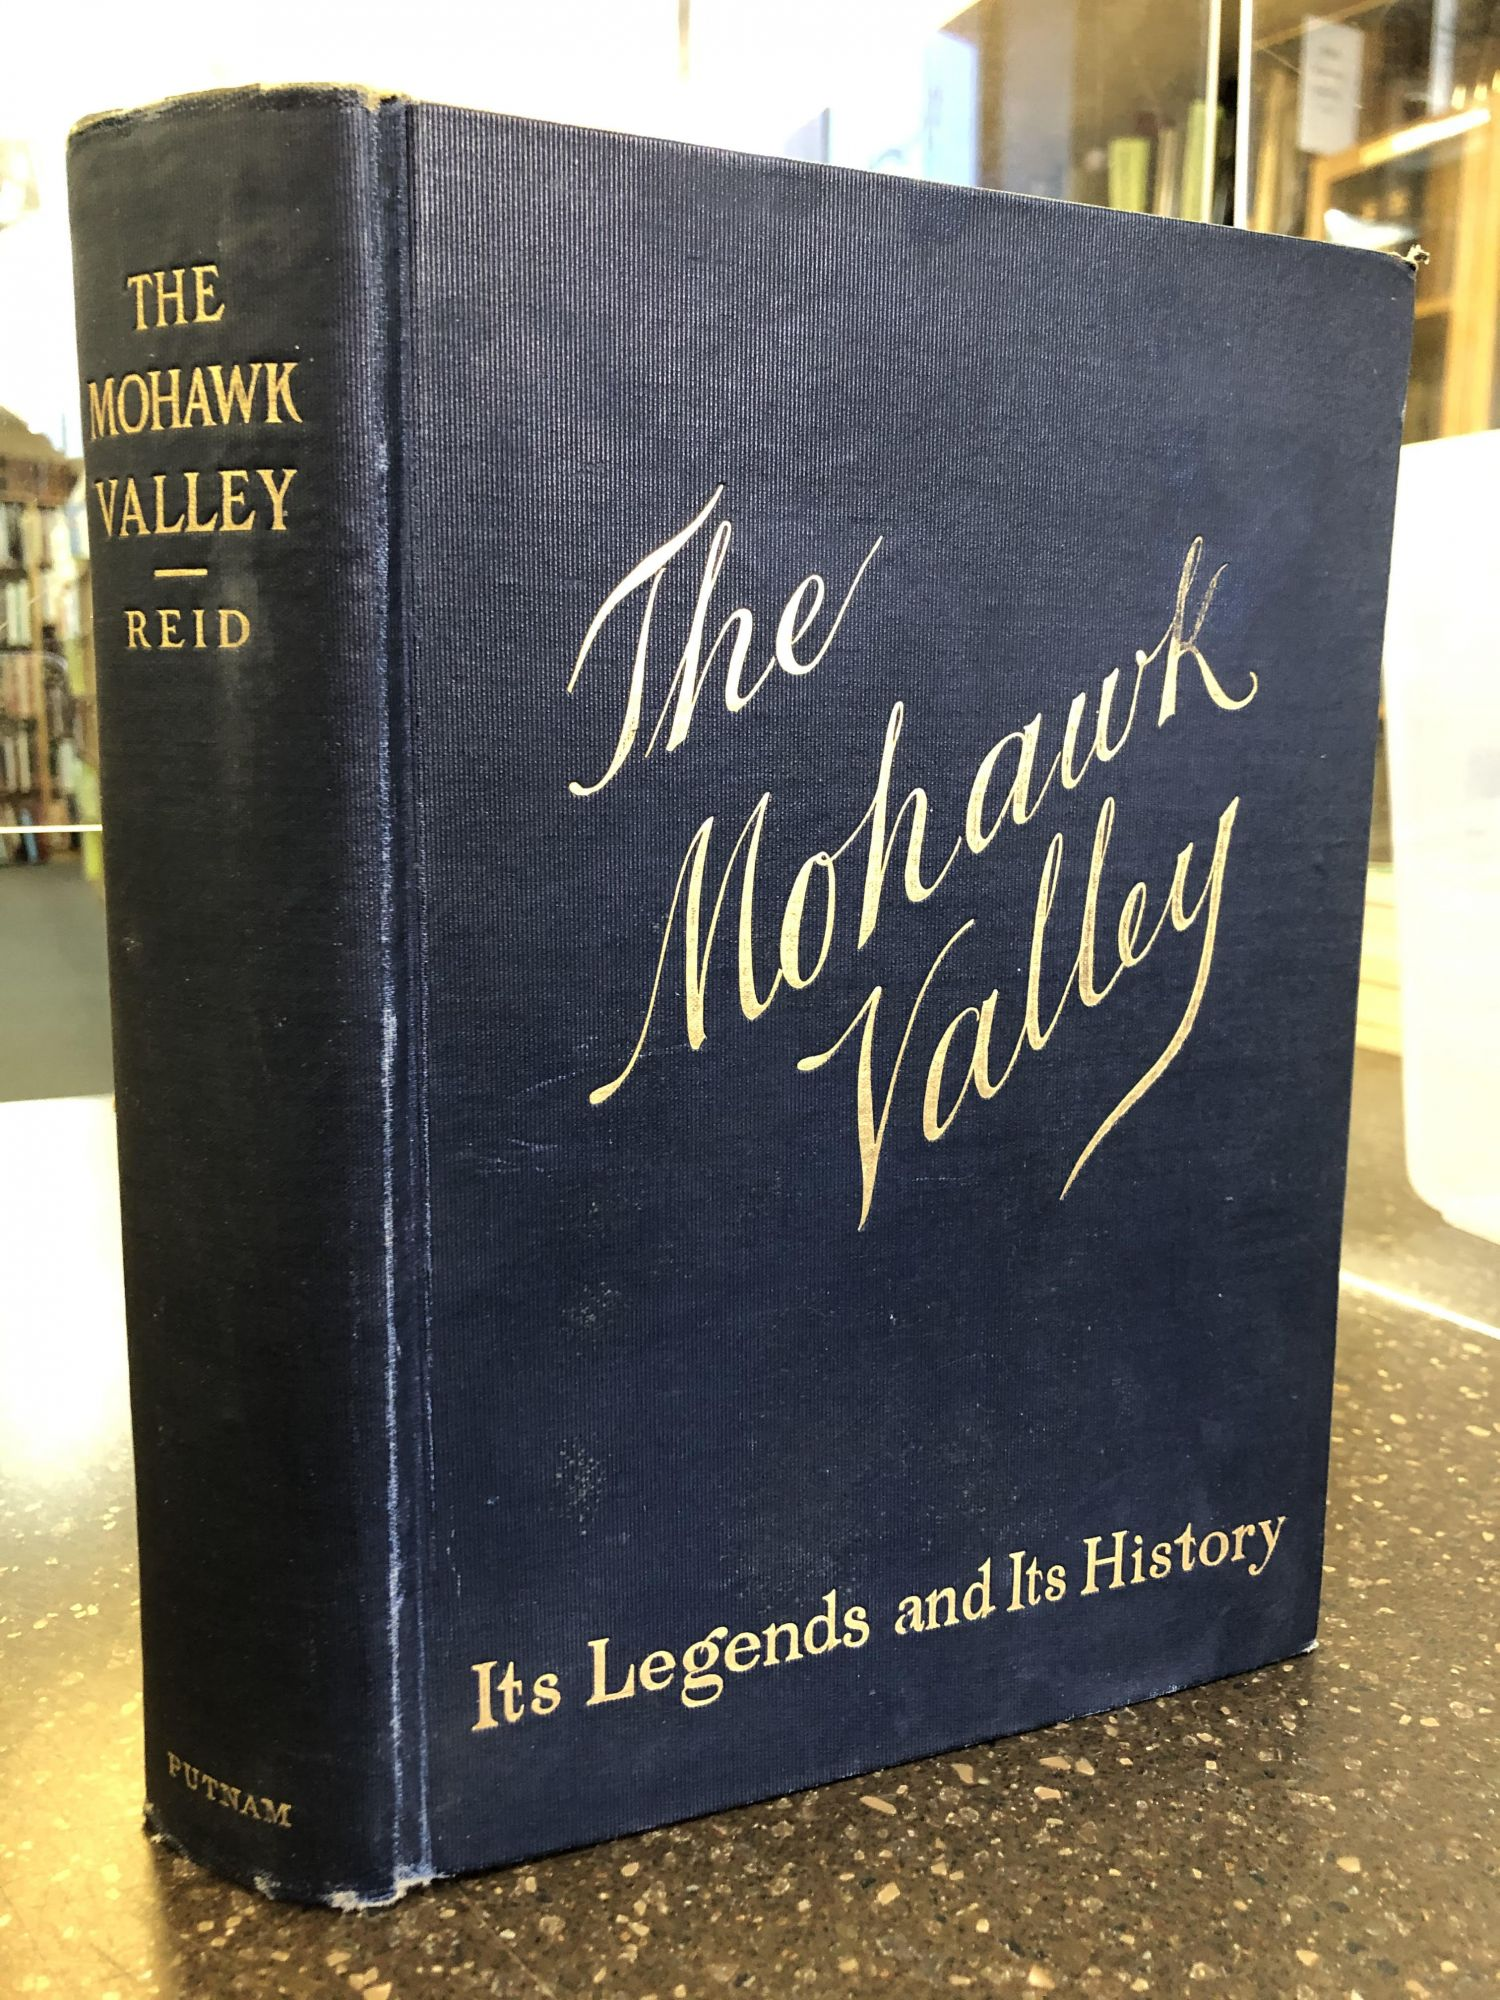 THE MOHAWK VALLEY: ITS LEGENDS AND ITS HISTORY. W. Max Reid, J. Arthur Maney.